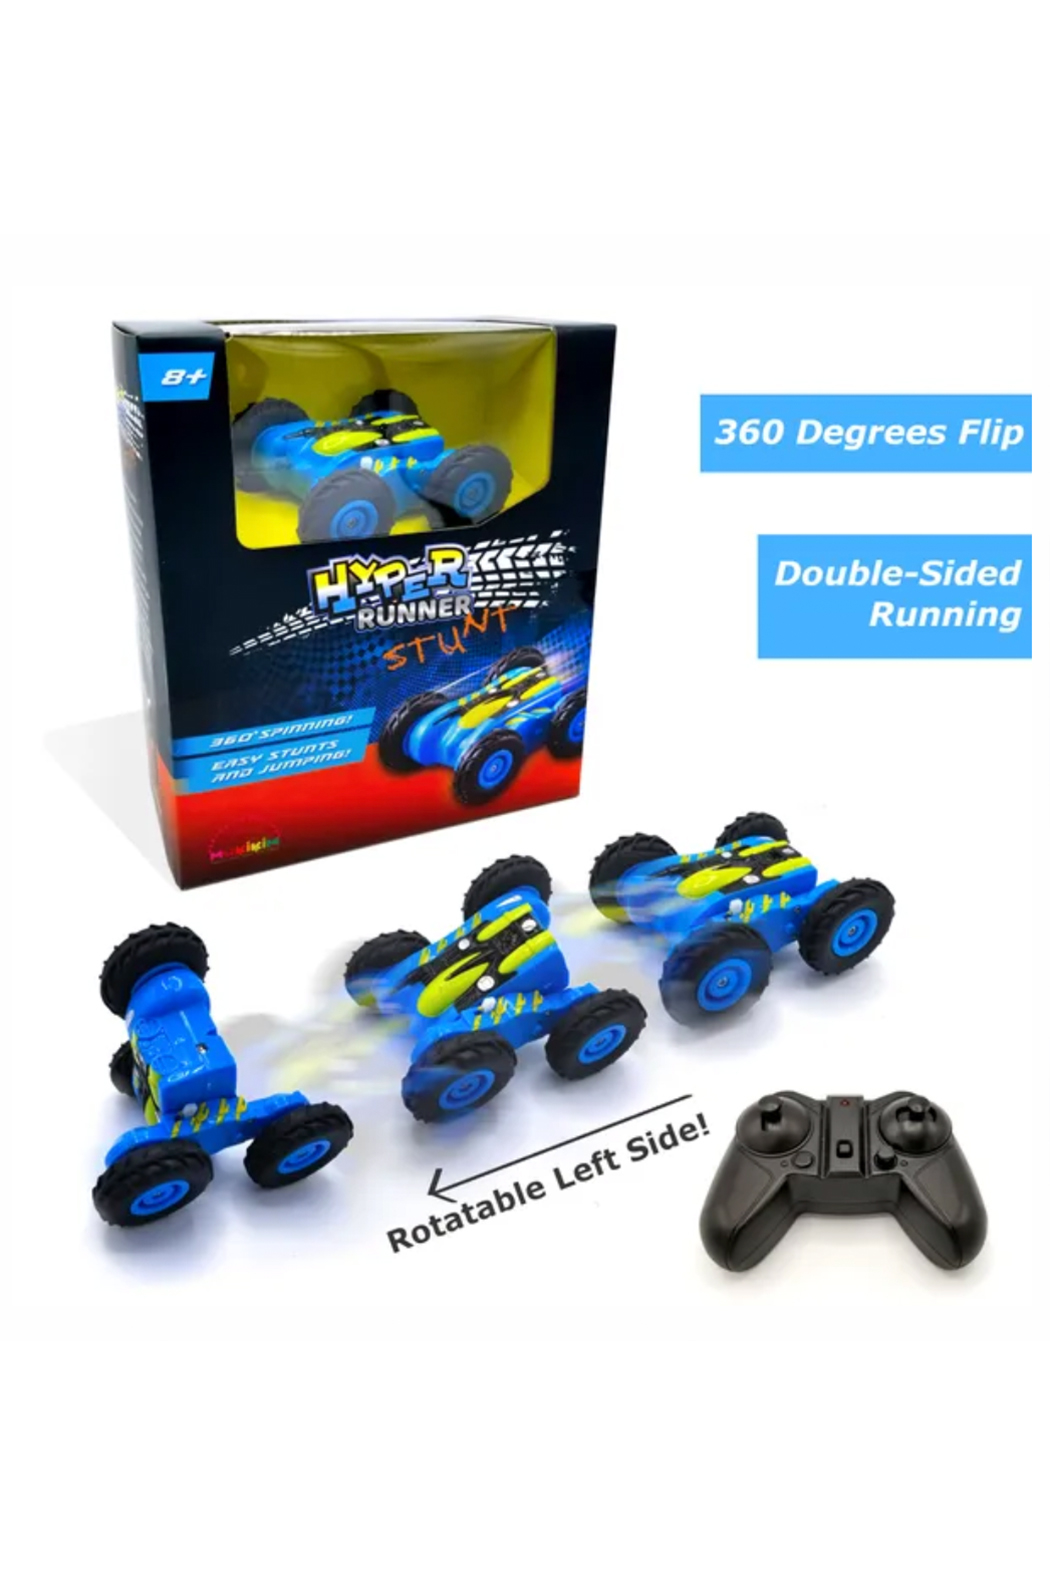 Mukikim Hyper Runner Stunt Remote Control Car - Front Cropped Image